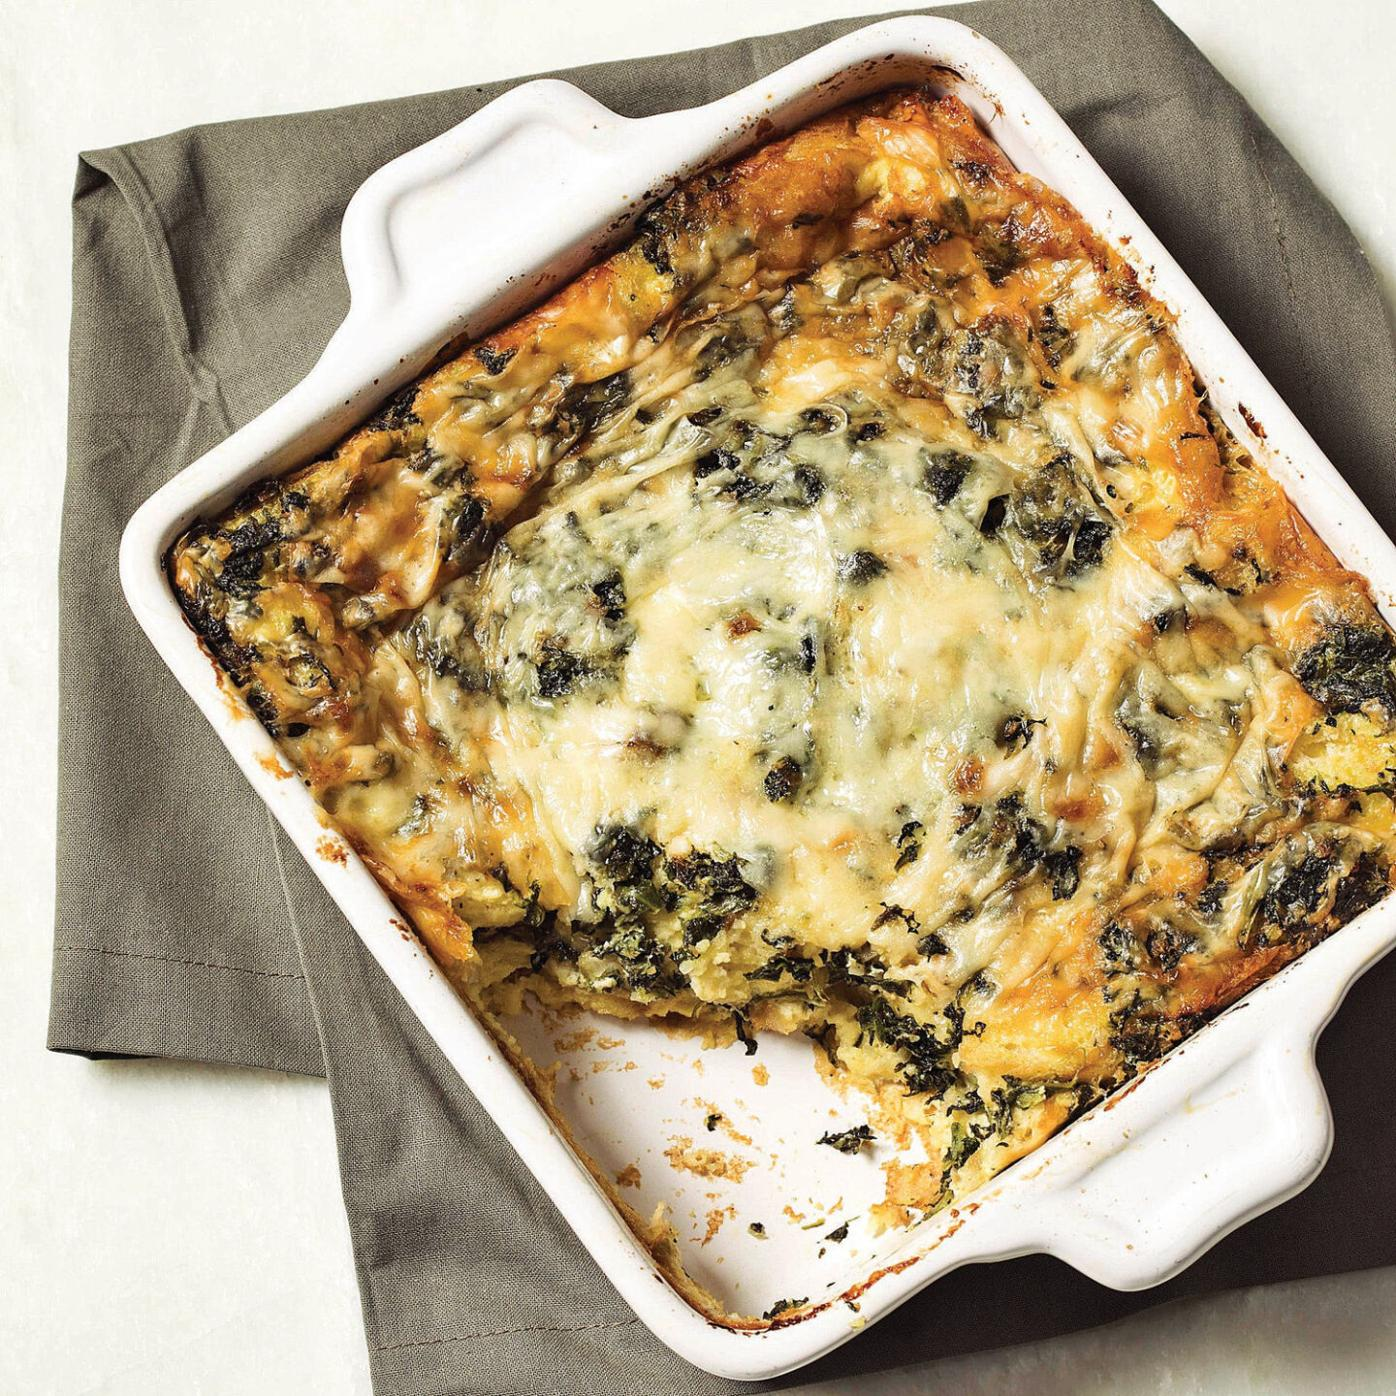 Earthy spinach, nutty cheese star in brunch strata